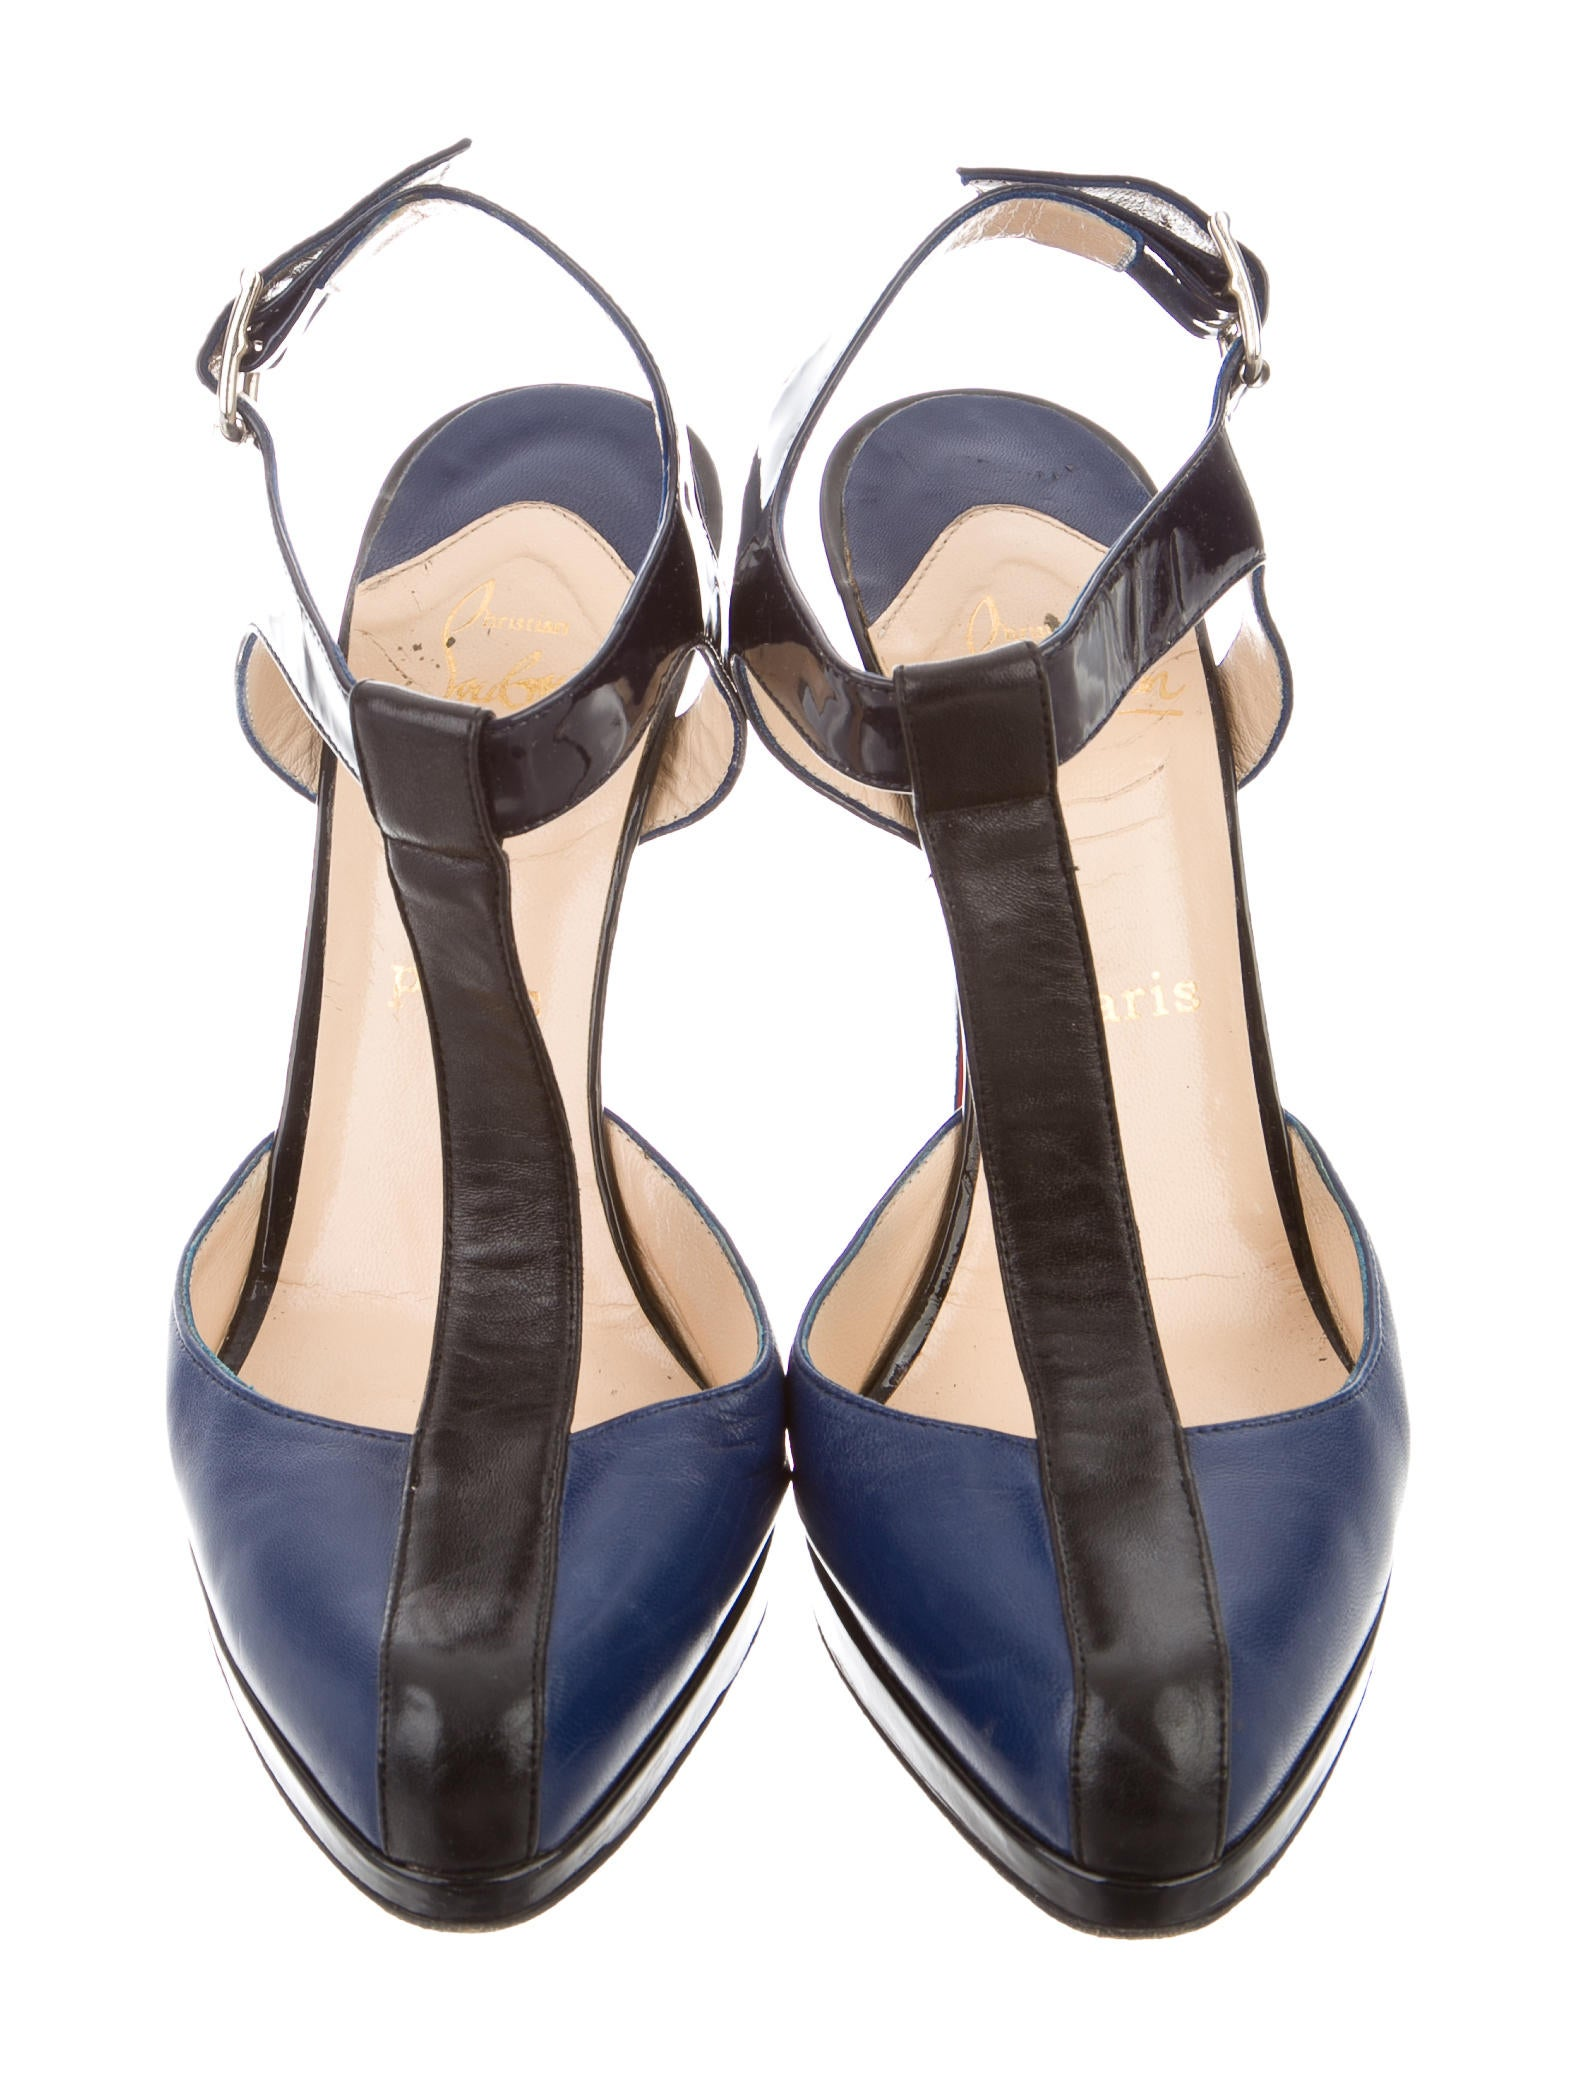 Free shipping BOTH ways on leather t strap heels, from our vast selection of styles. Fast delivery, and 24/7/ real-person service with a smile. Click or call